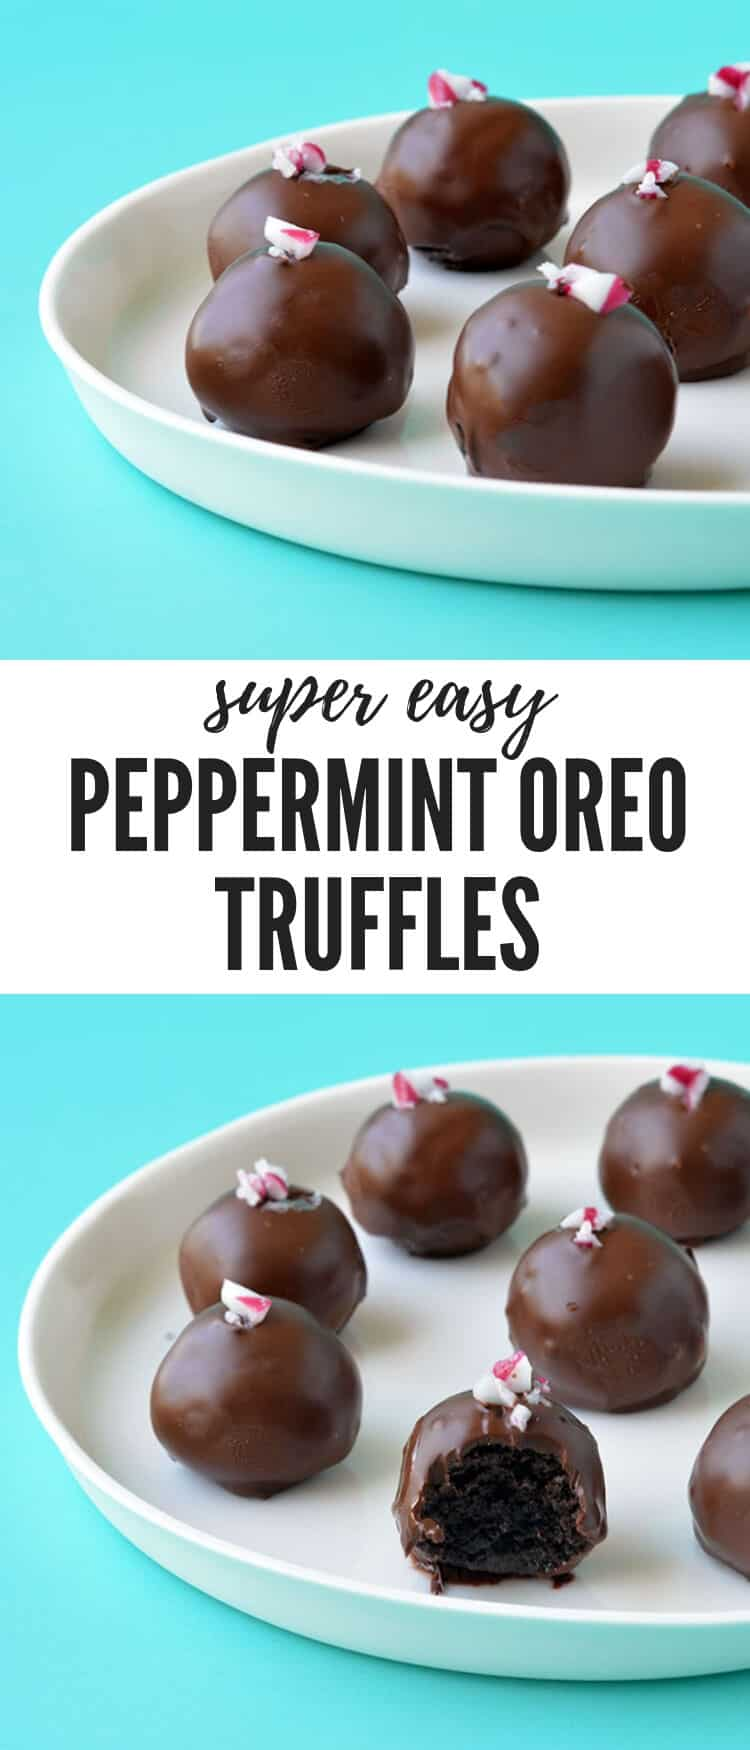 Celebrate Christmas with these five ingredient Peppermint Oreo Truffles. Boasting a soft chocolate mint centre, these Oreo truffles are covered with dark chocolate and crushed candy canes. Find the easy recipe from sweetestmenu.com #oreos #truffles #chocolate #christmas